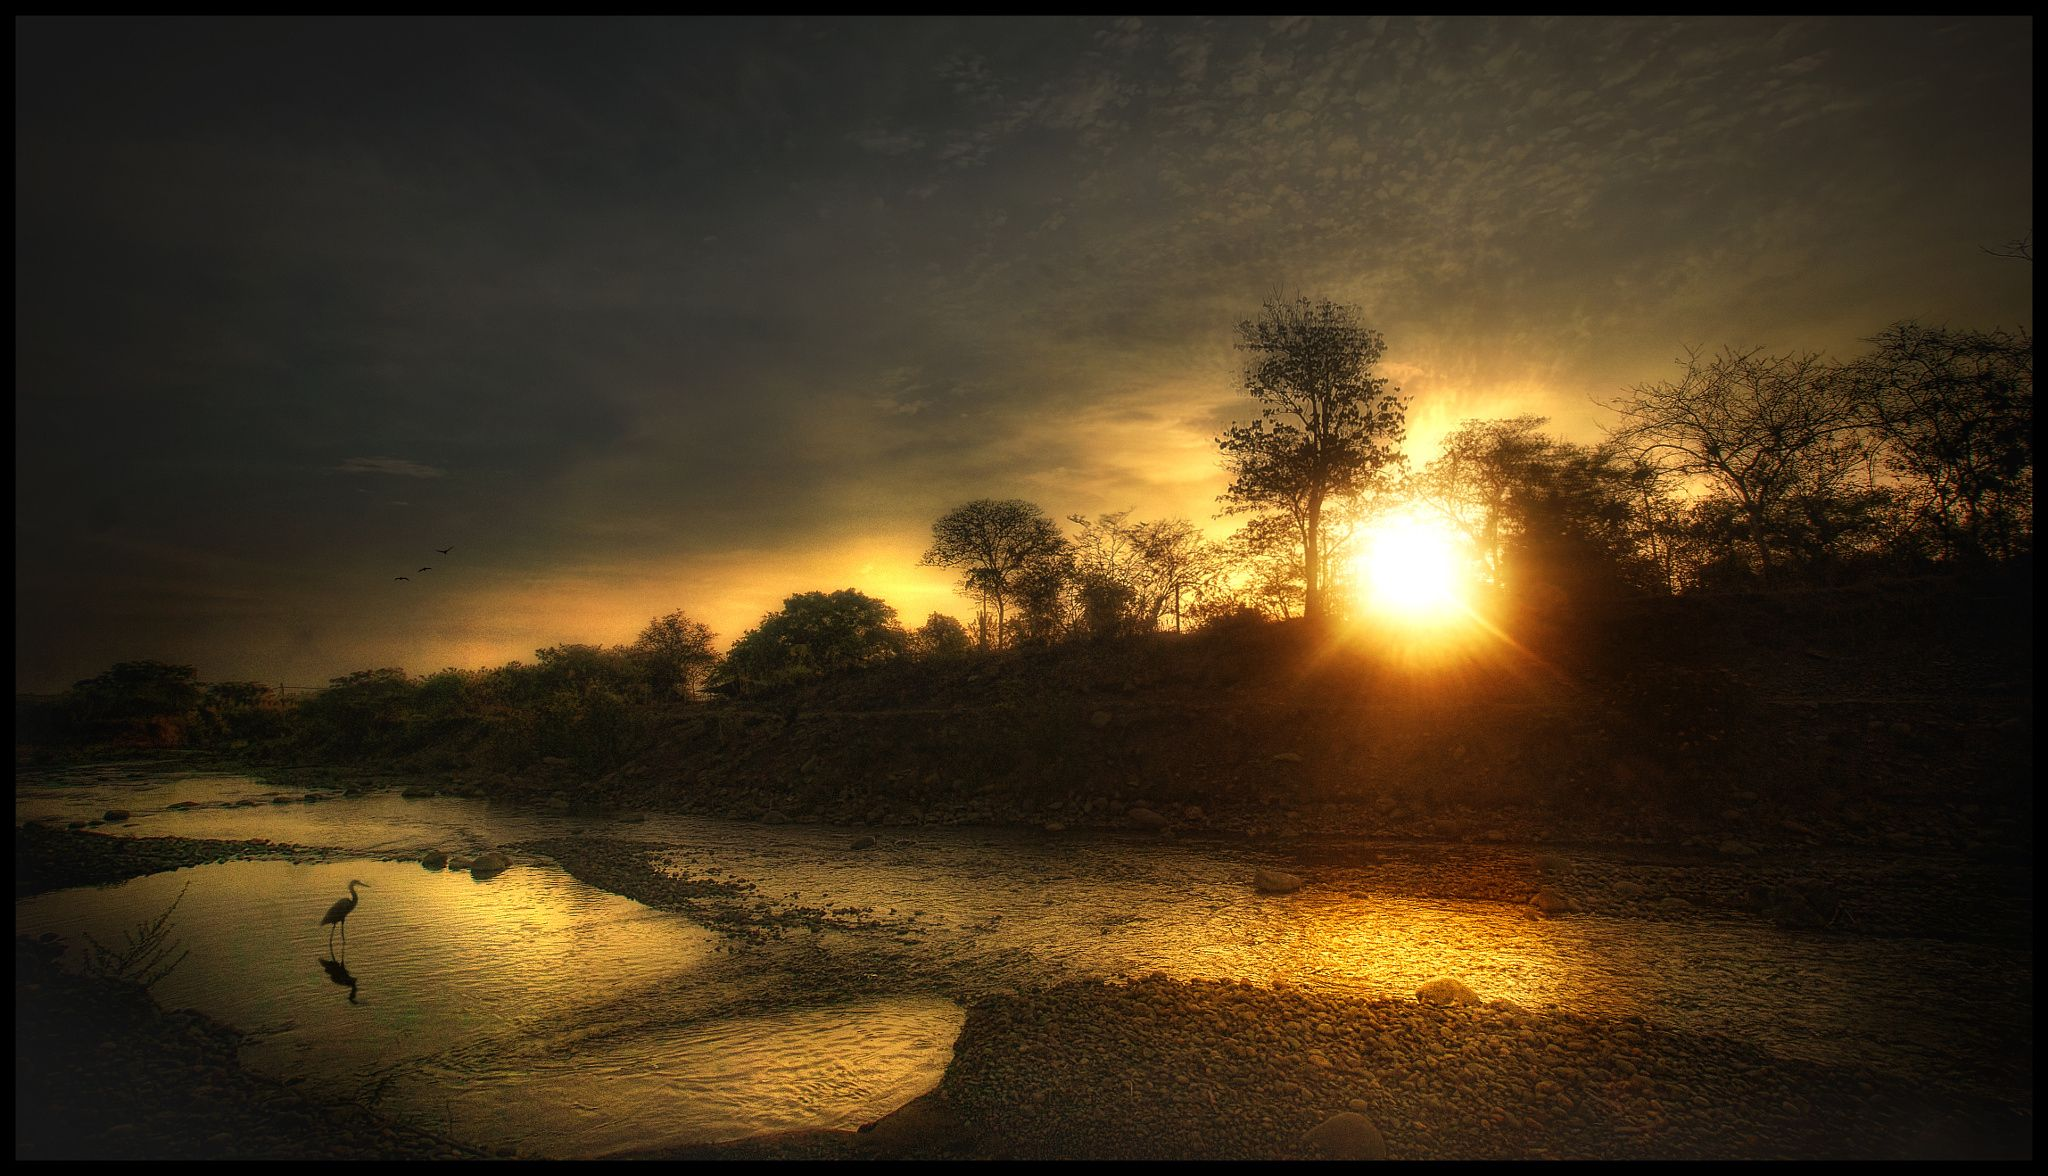 Photo Late afternoon by jose arley agudelo on 500px